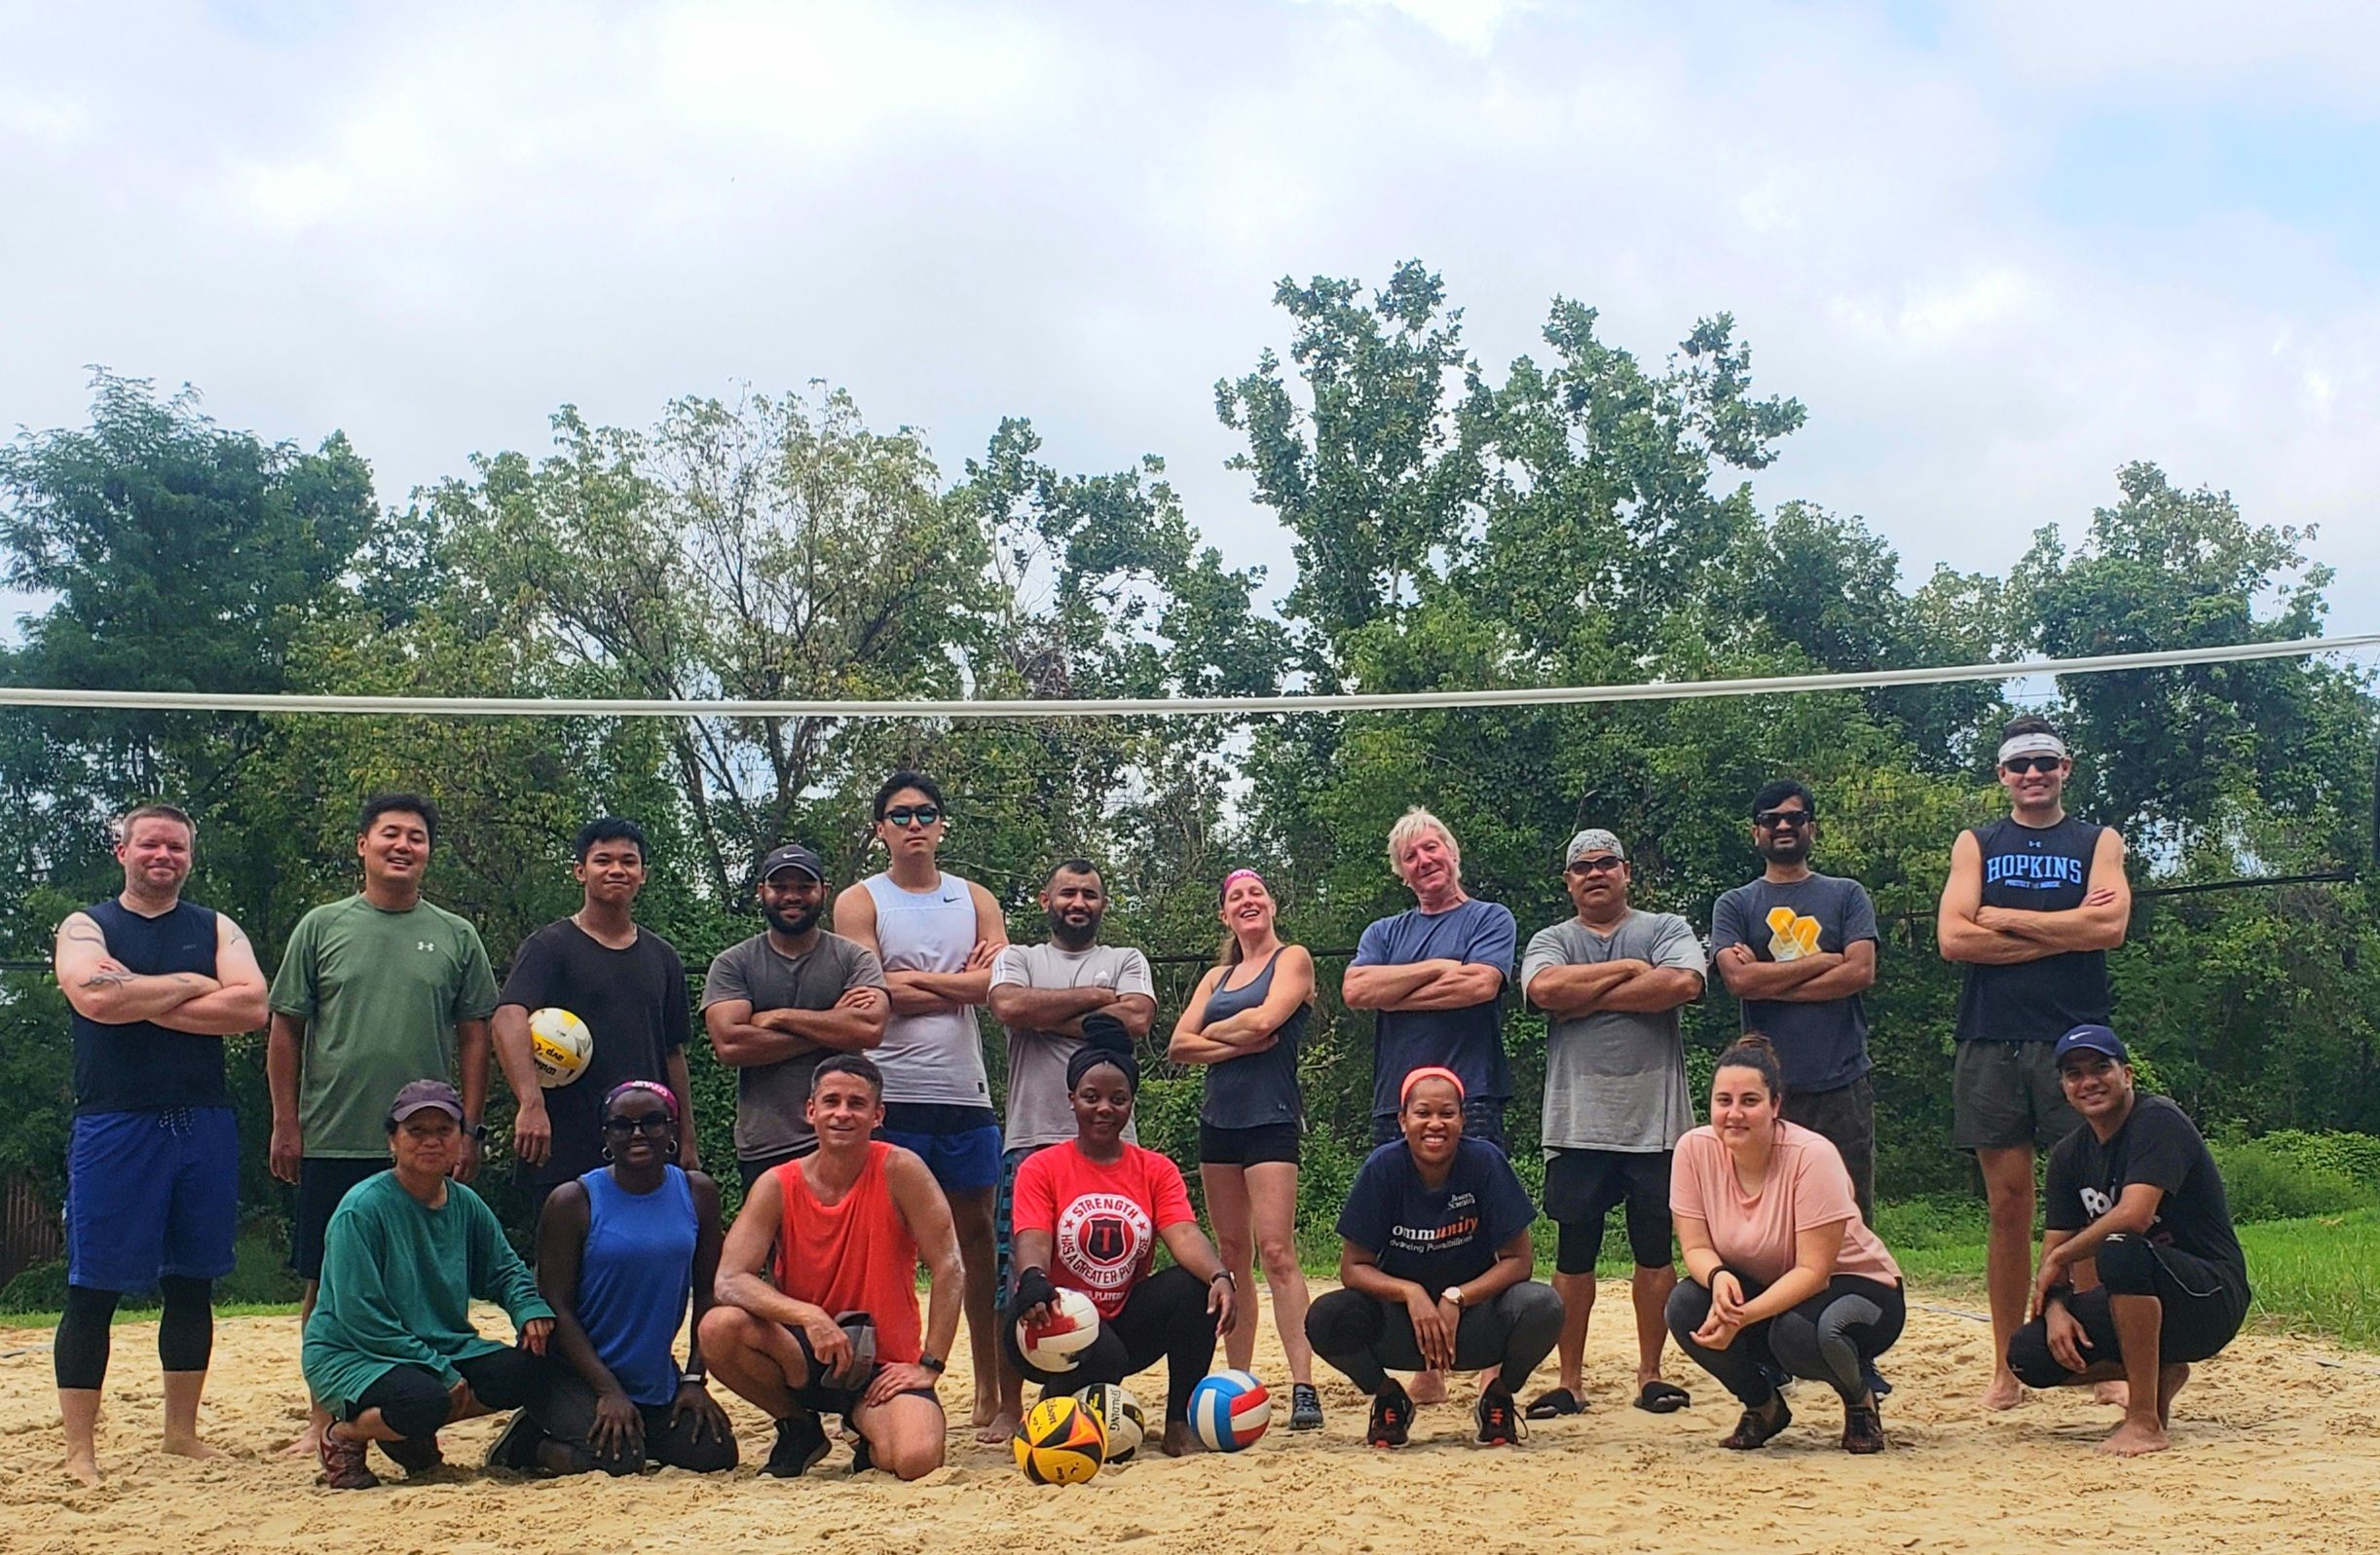 Volleyball Sand-Wed: Beginners/adv beginners